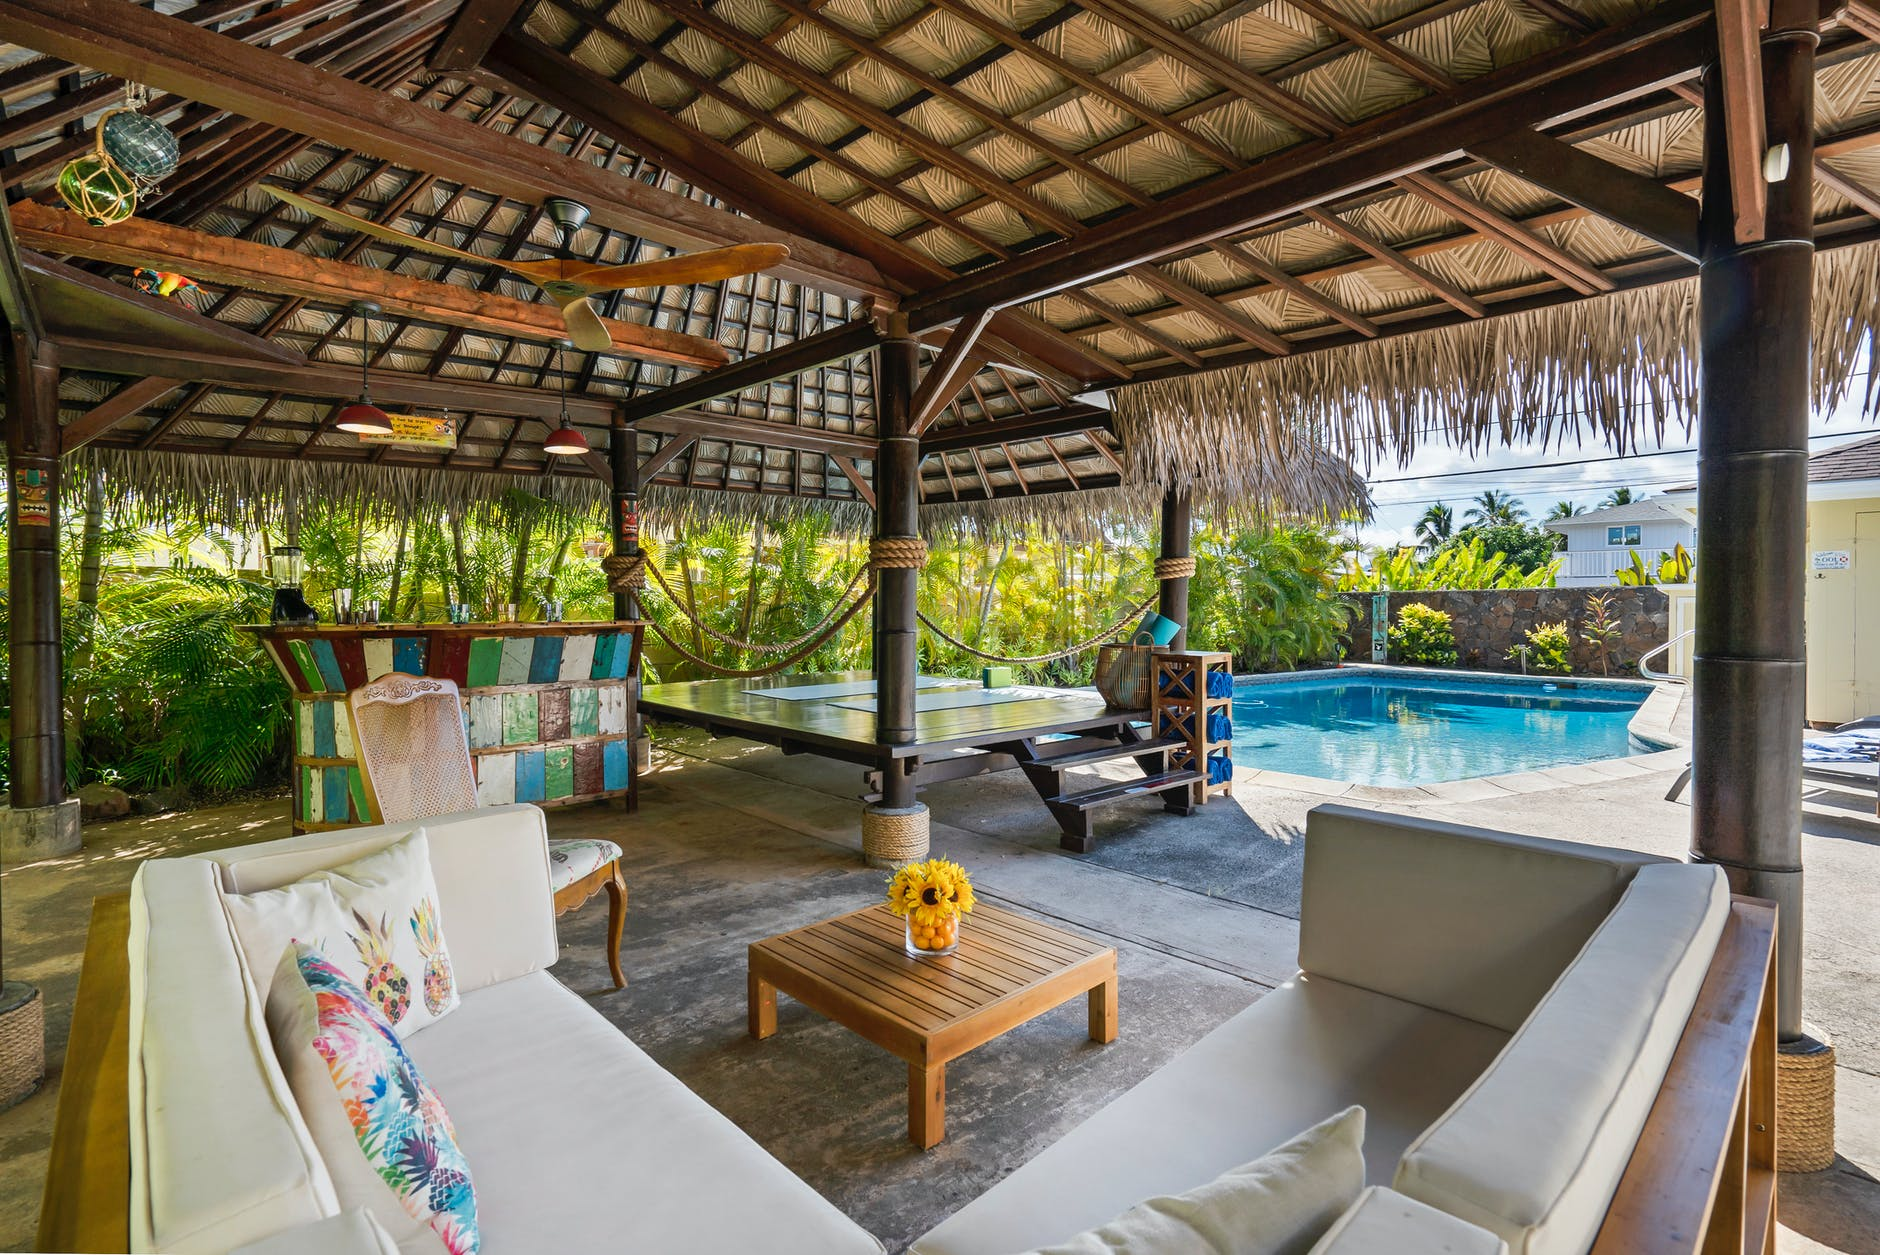 a cozy cabana close to a swimming pool